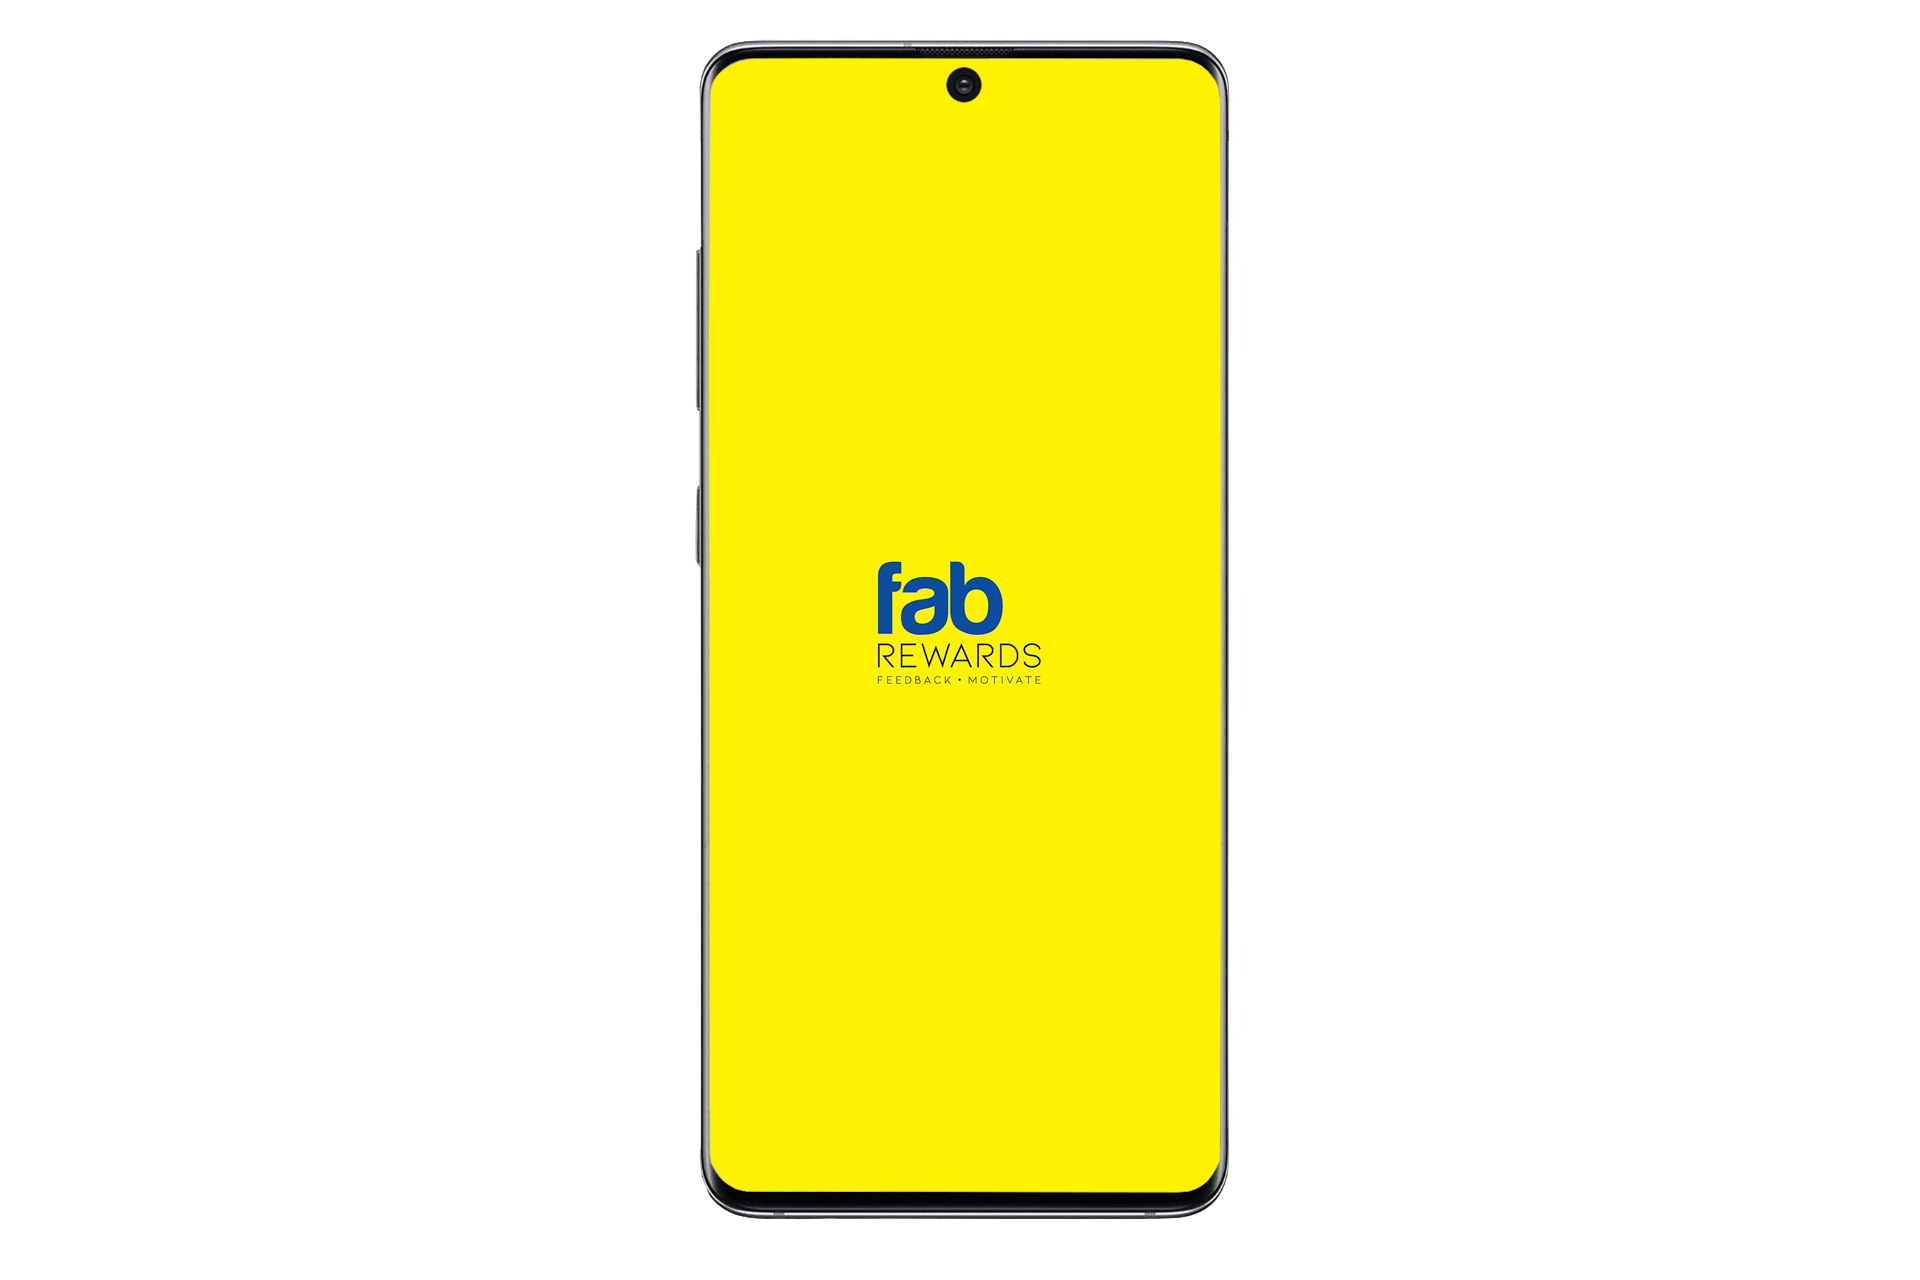 fabRewards-android-01